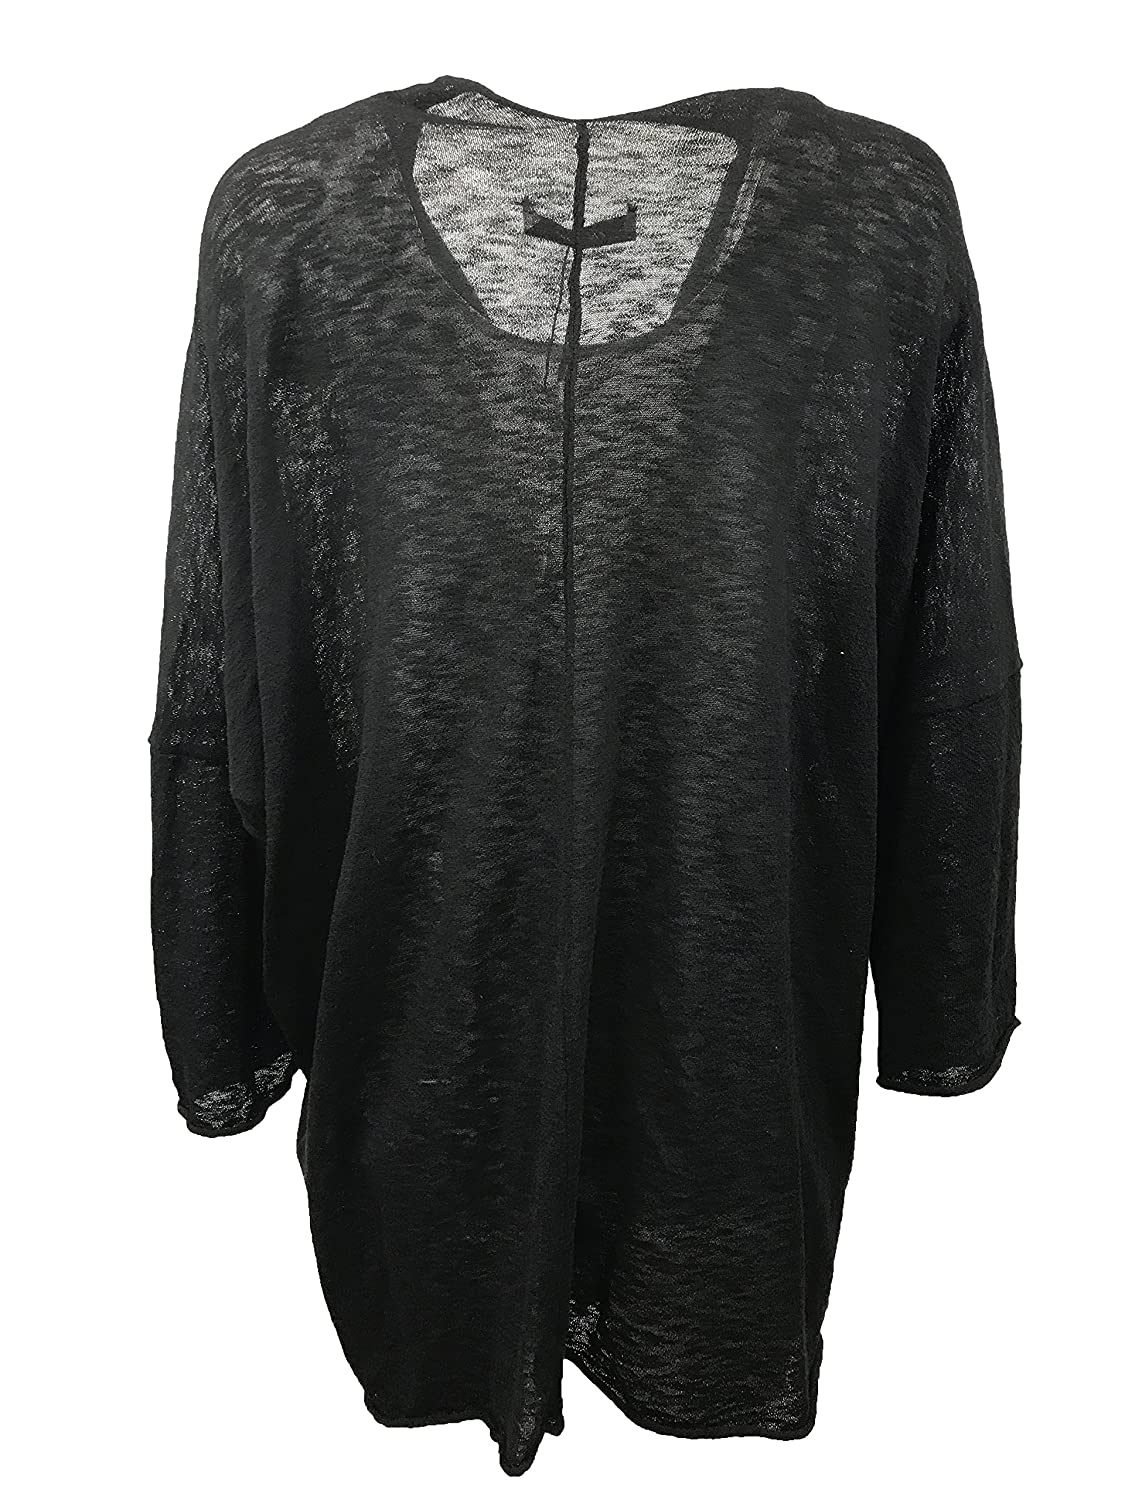 5ba39c5d Zara Knitwear Collection Women's Open Front High Low Cozy Cardigan, Black,  L at Amazon Women's Clothing store: